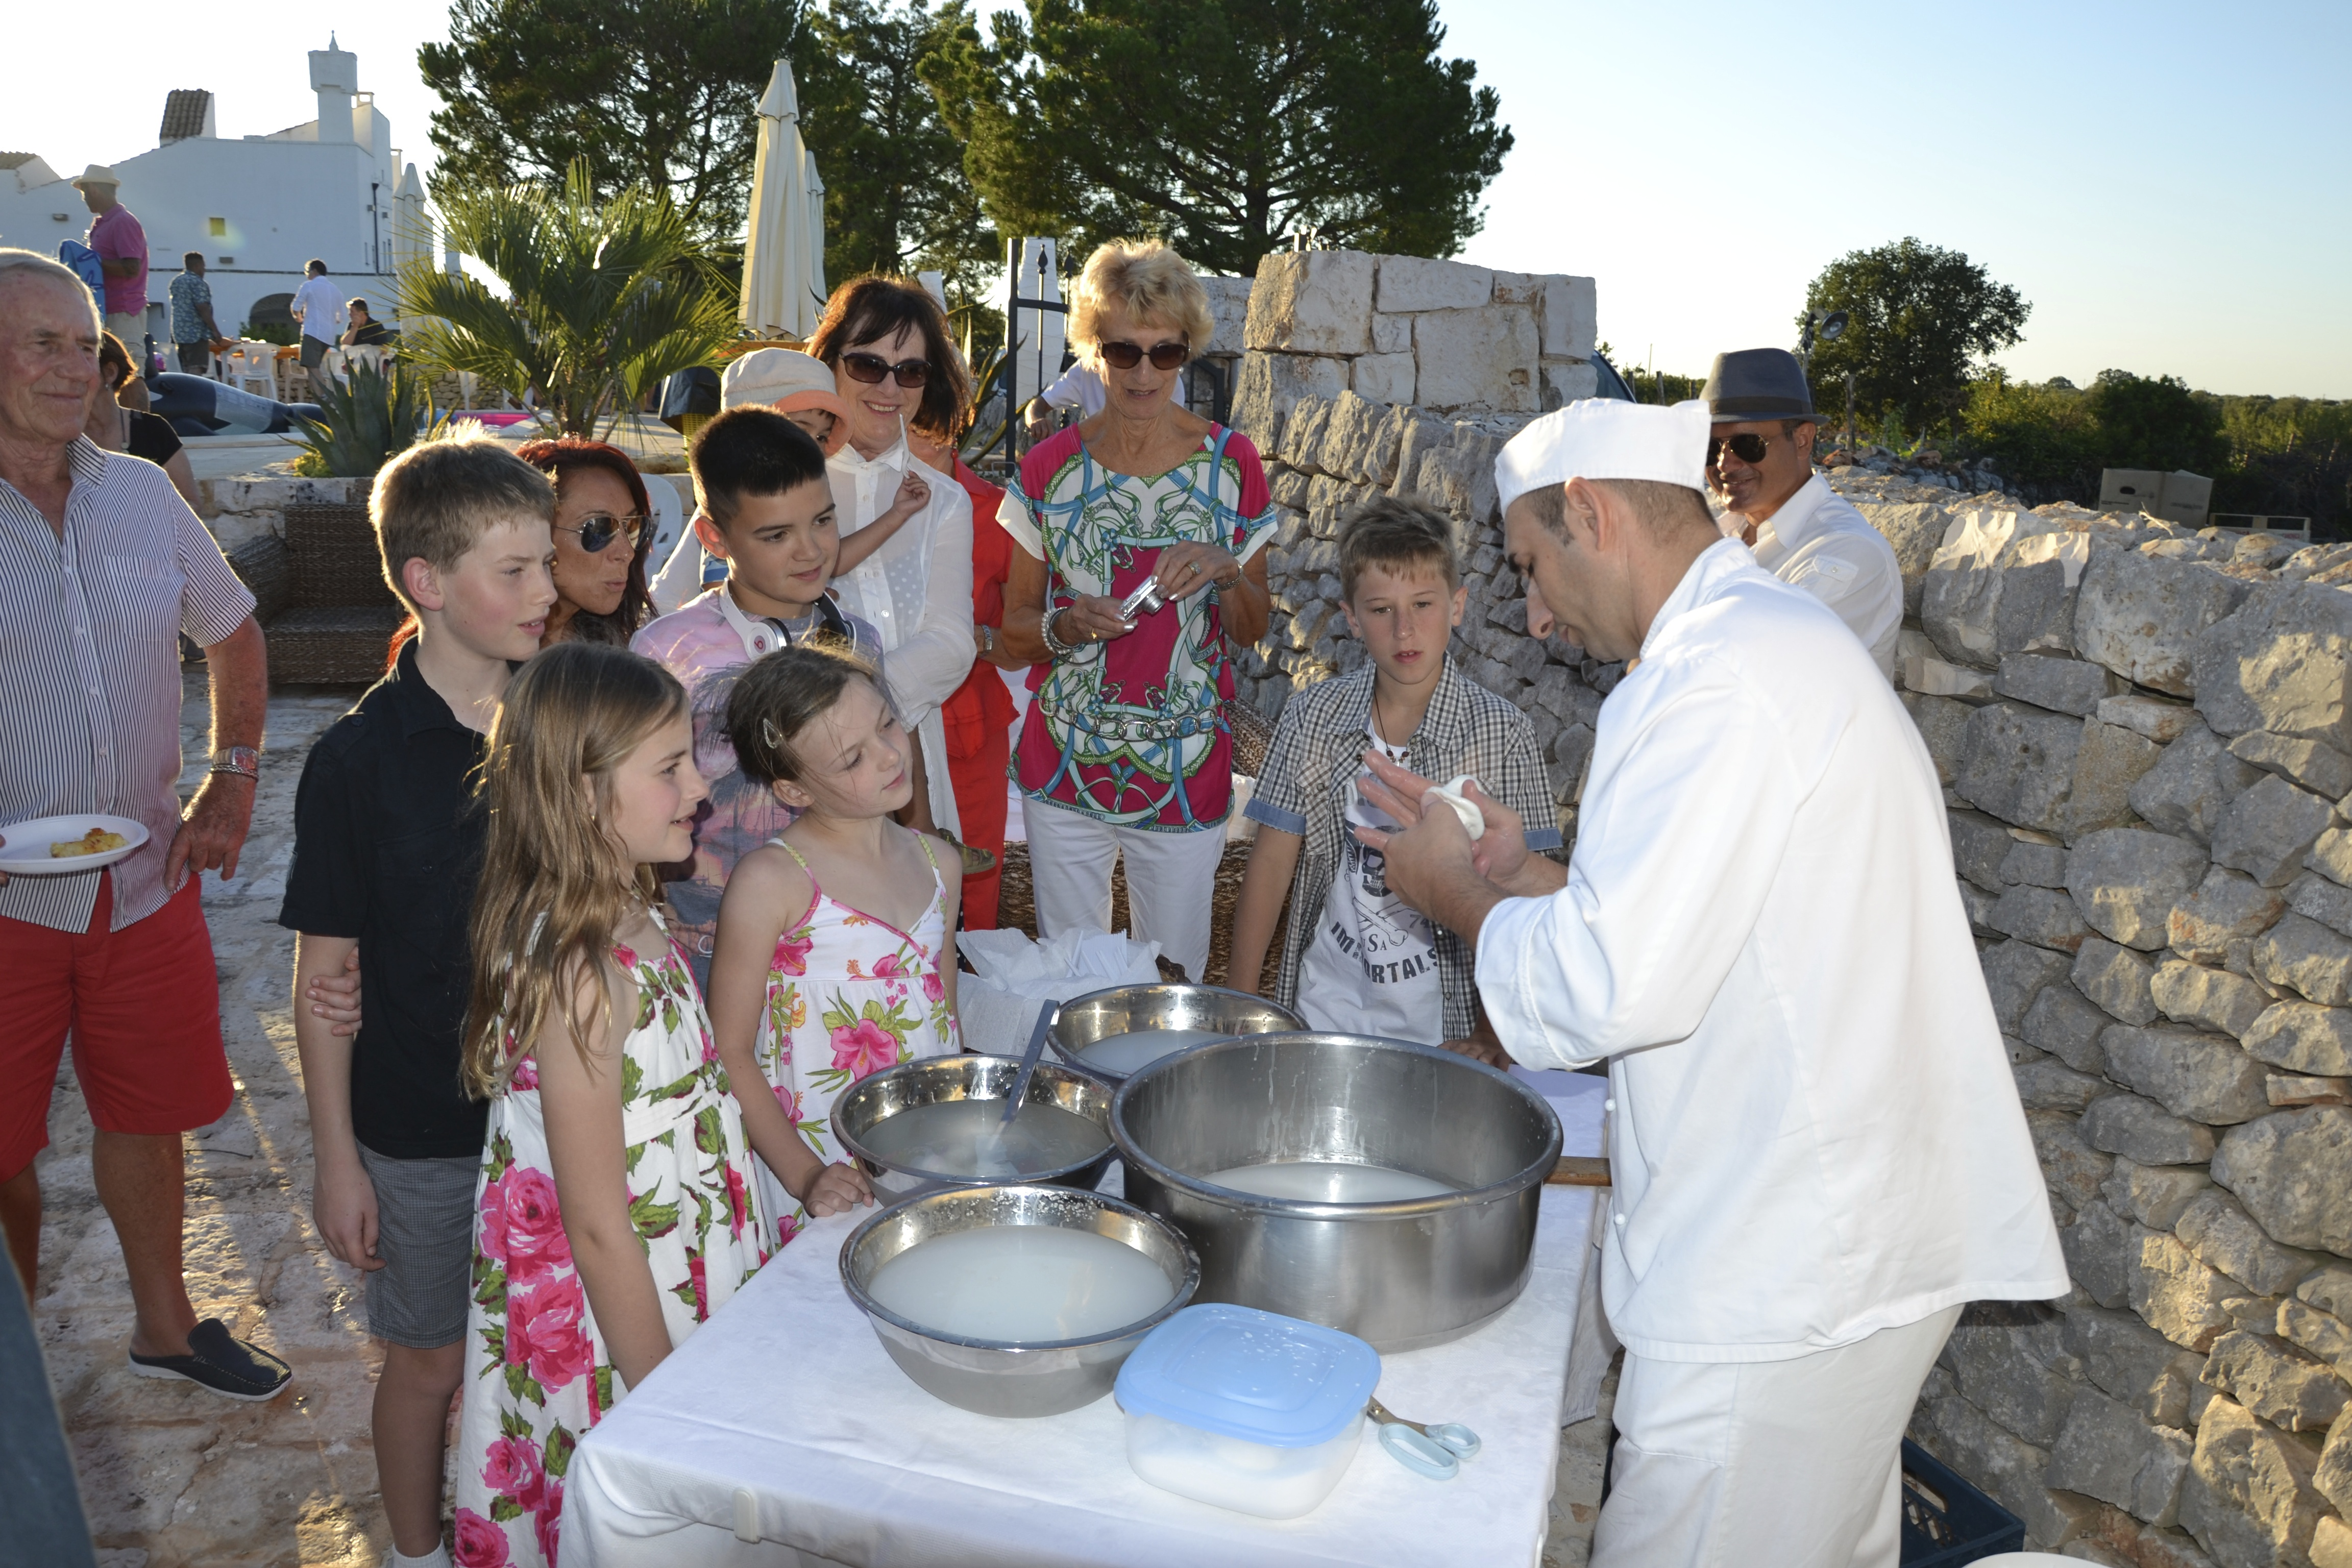 The Cheese man makes fresh mozzarella at our pre wedding dinner held at the Masseria Della Zingara